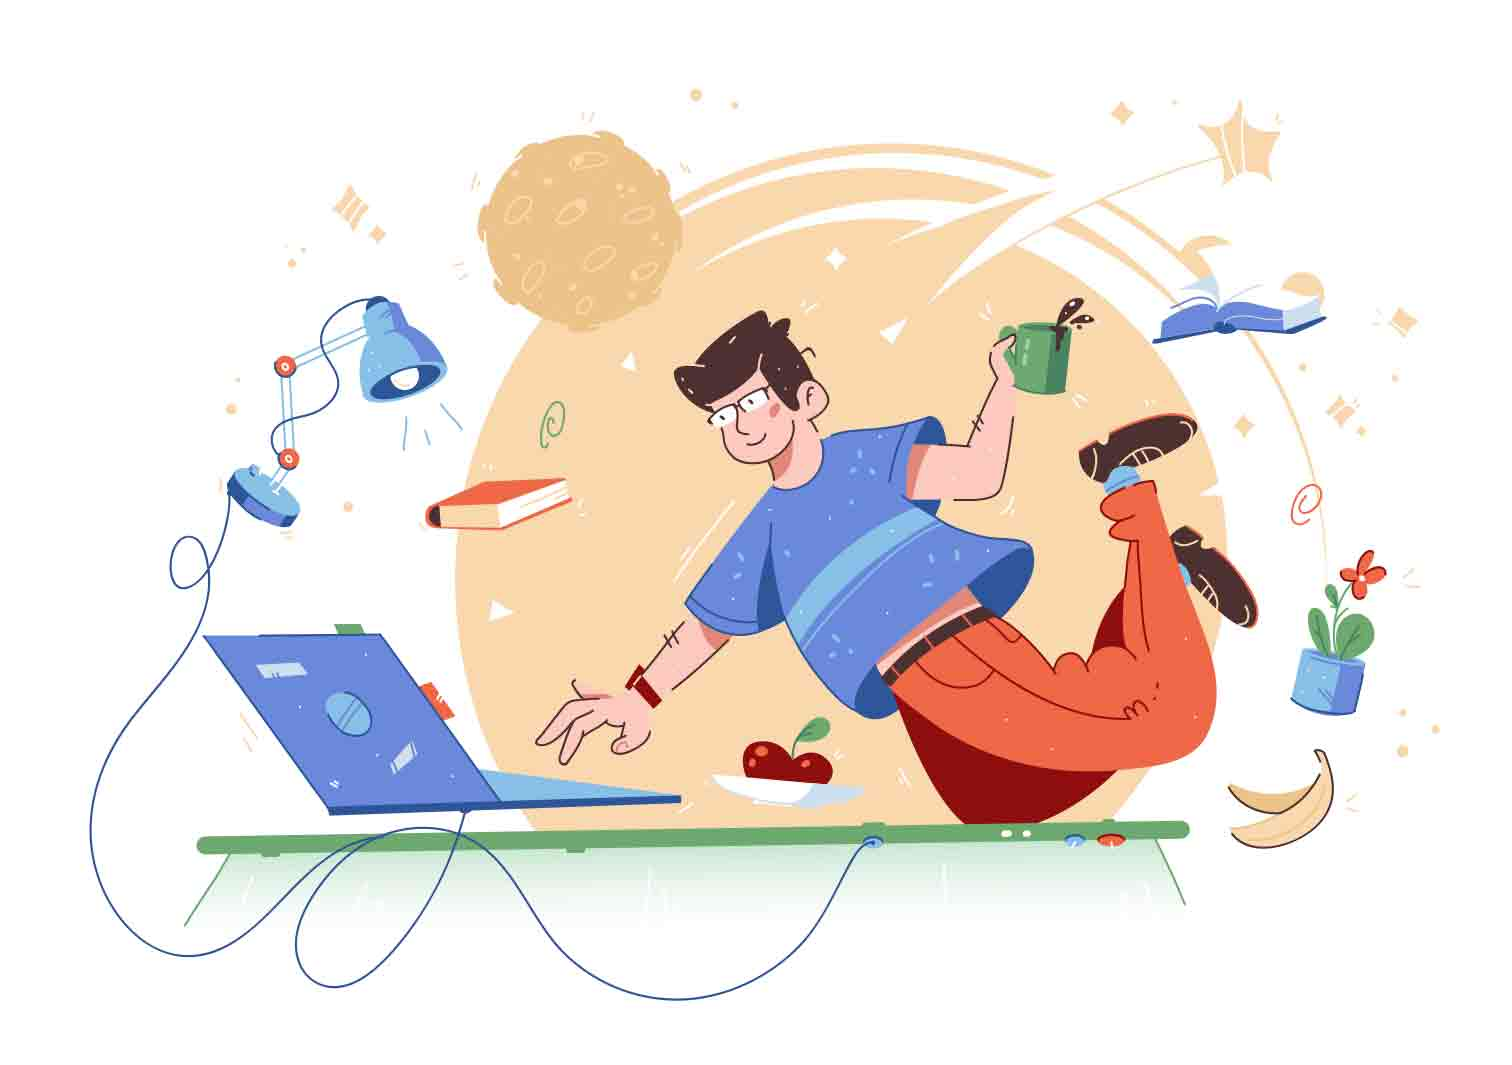 Fun and engaging illustrations on various themes. Vector character illustrations.